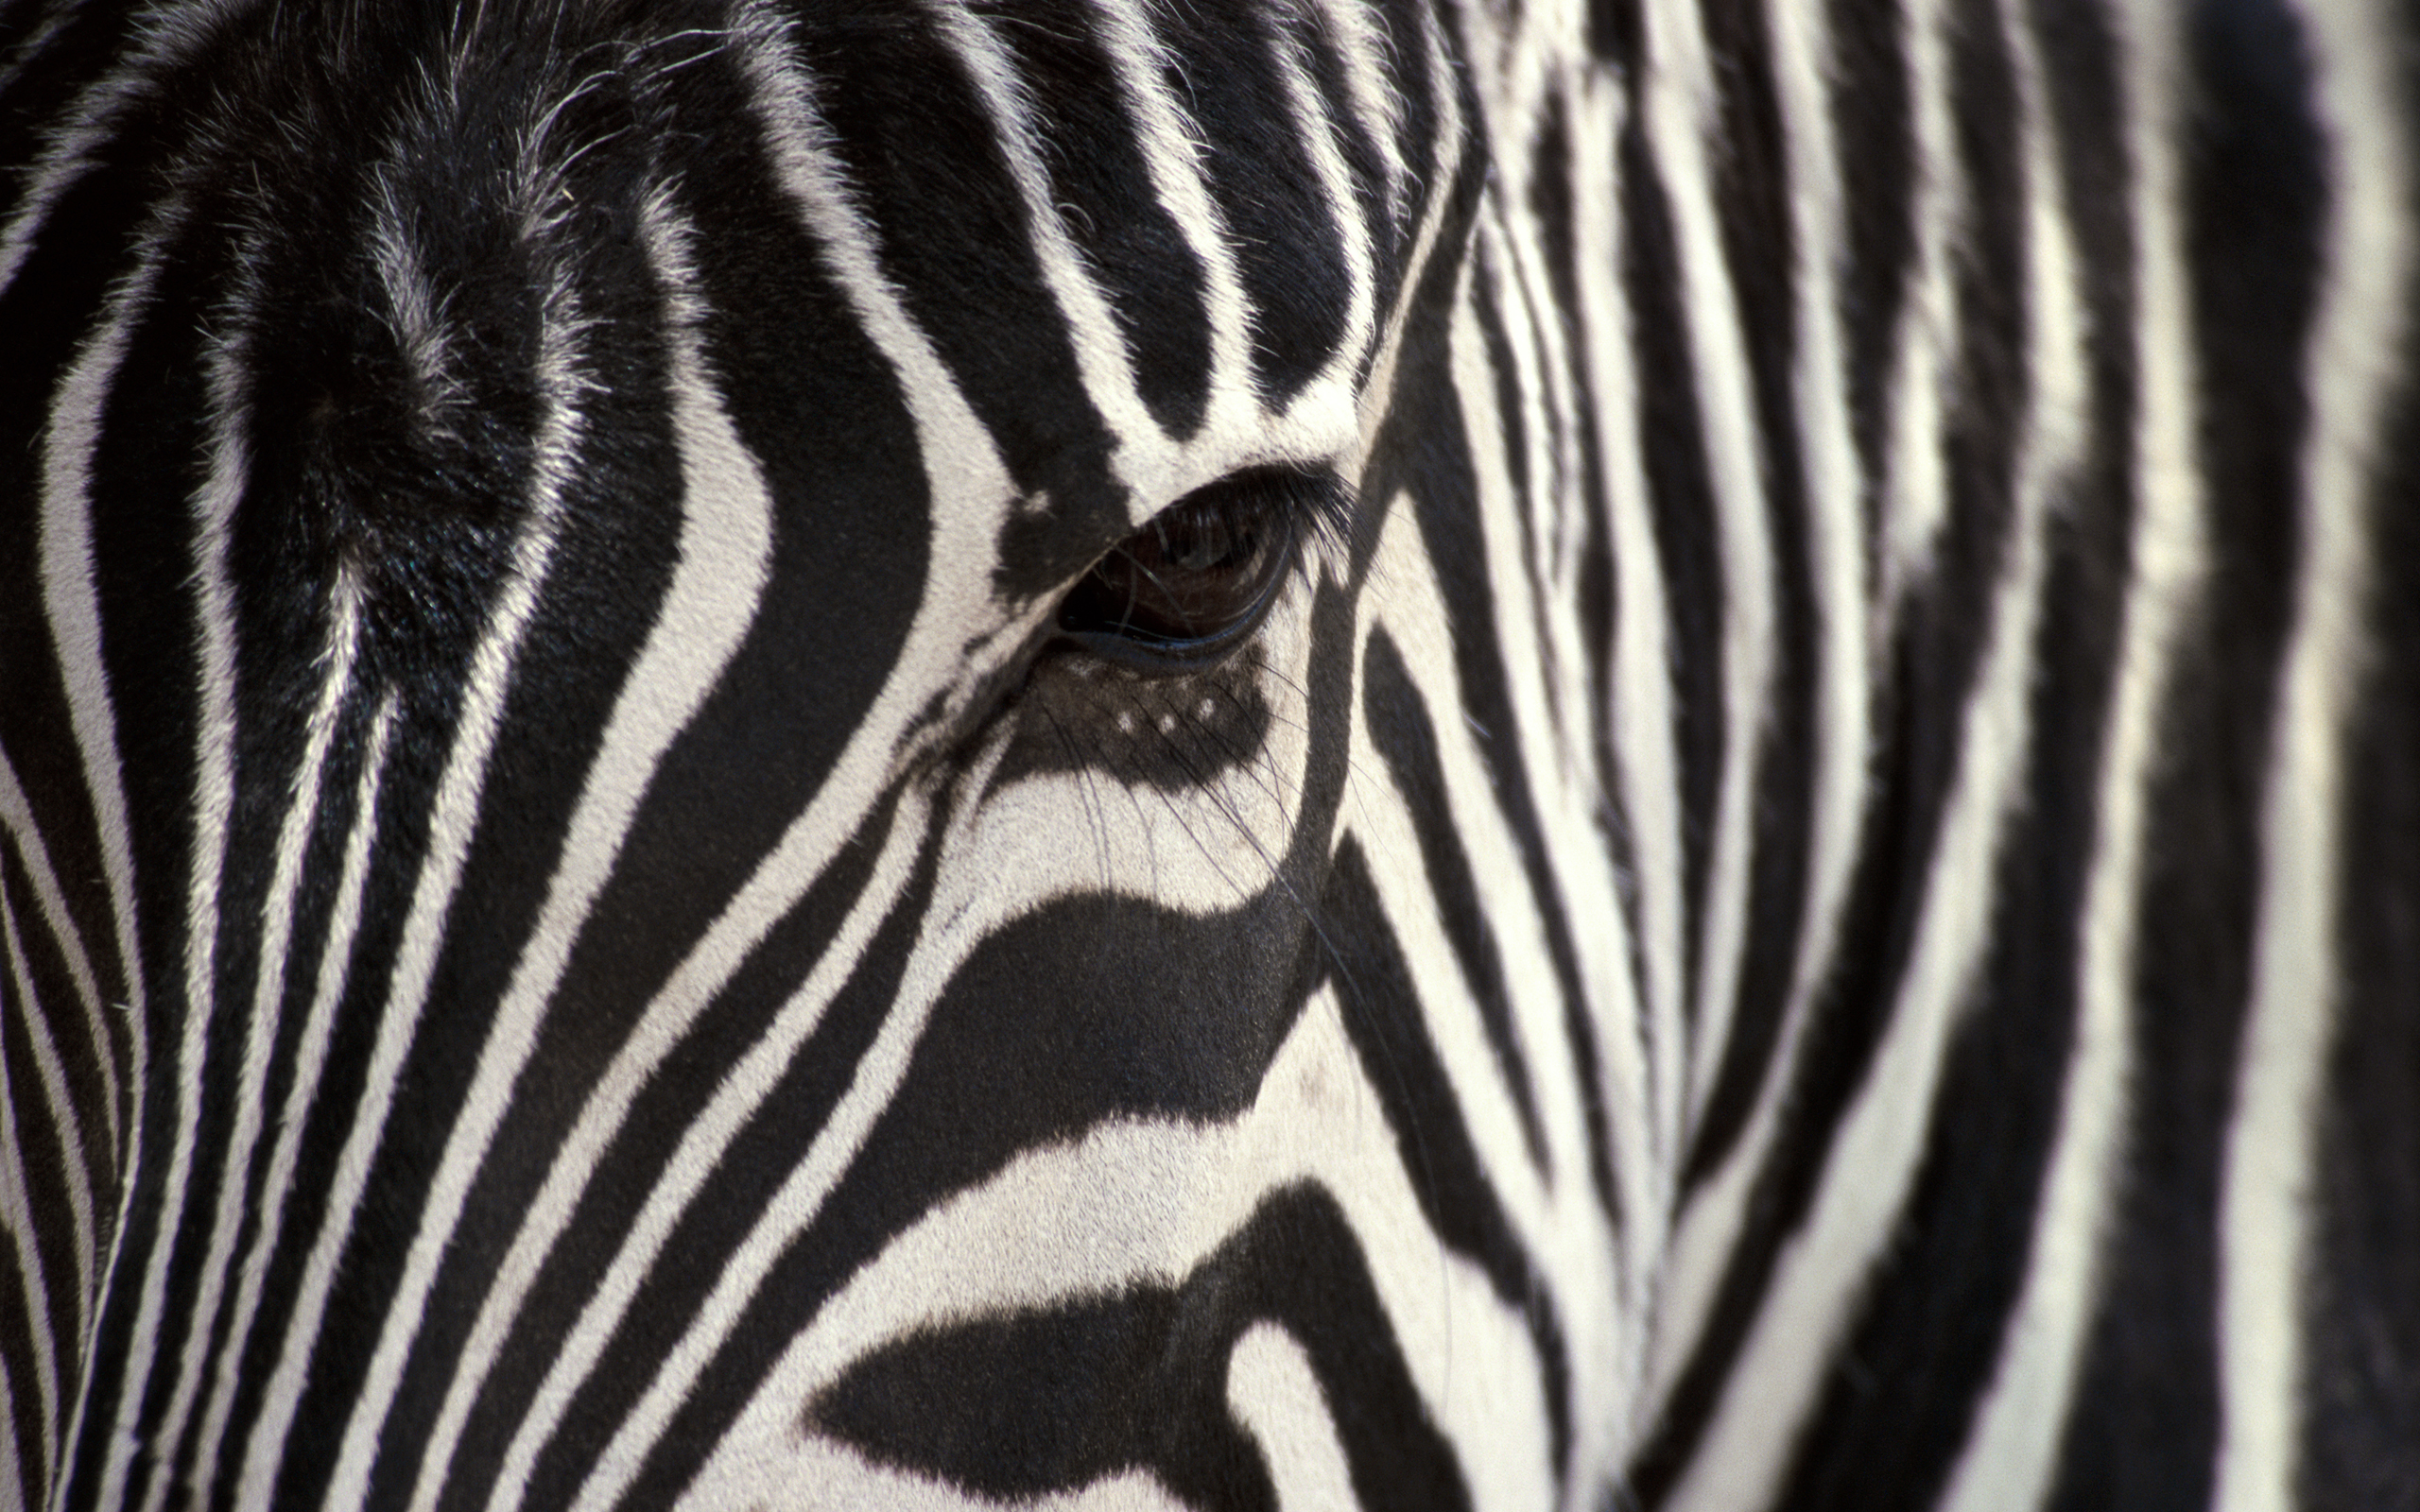 Zebra Backgrounds